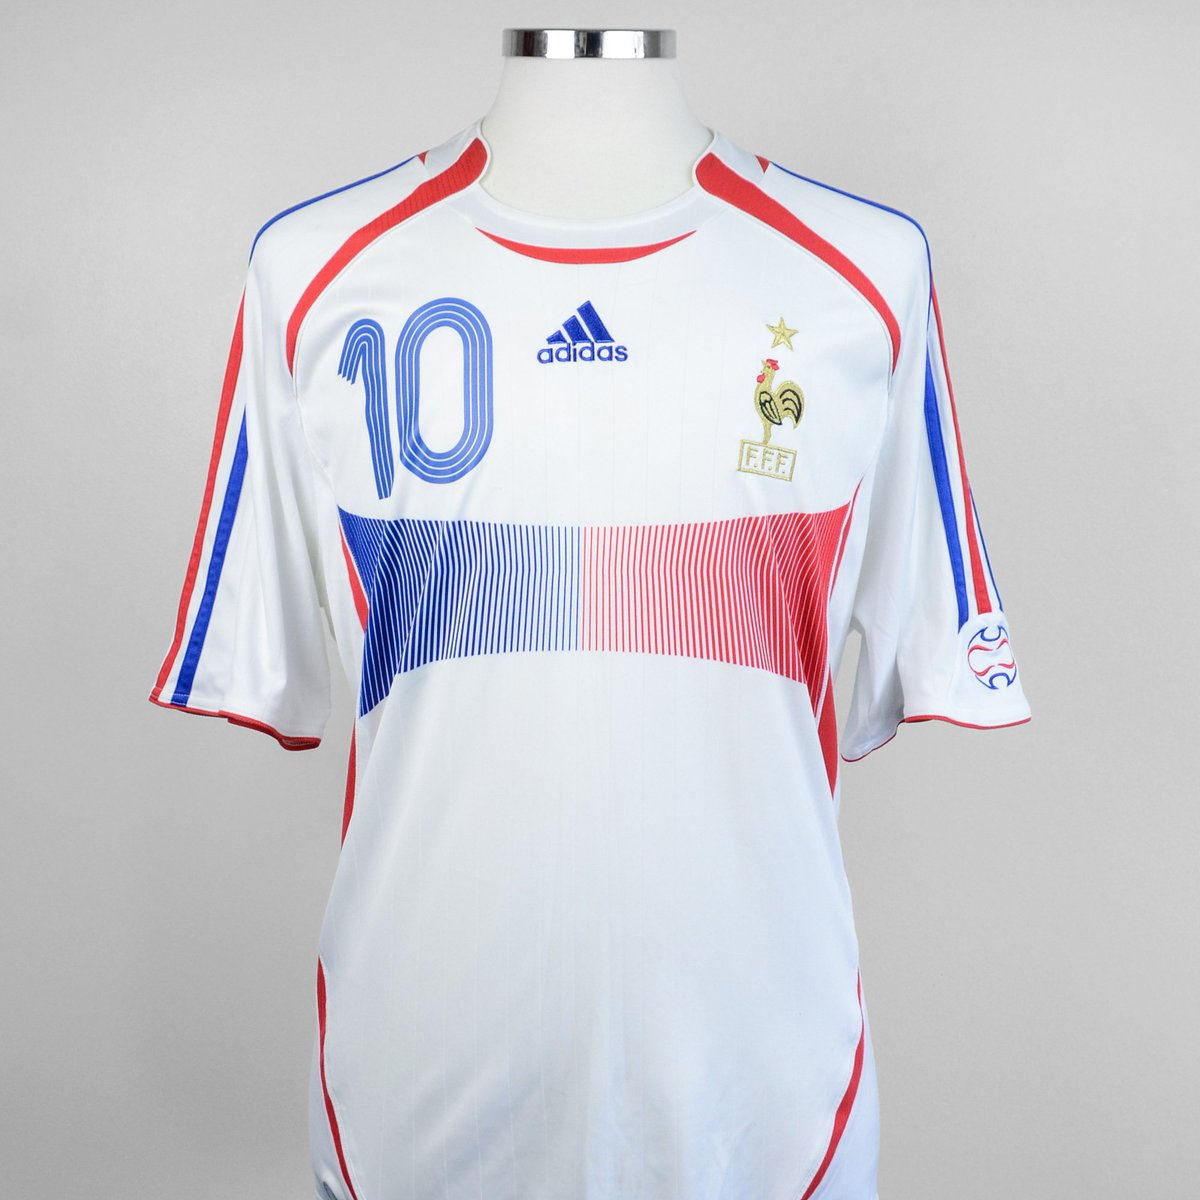 Classic Football Shirts On Twitter Spain 2006 World Cup Shirt Can